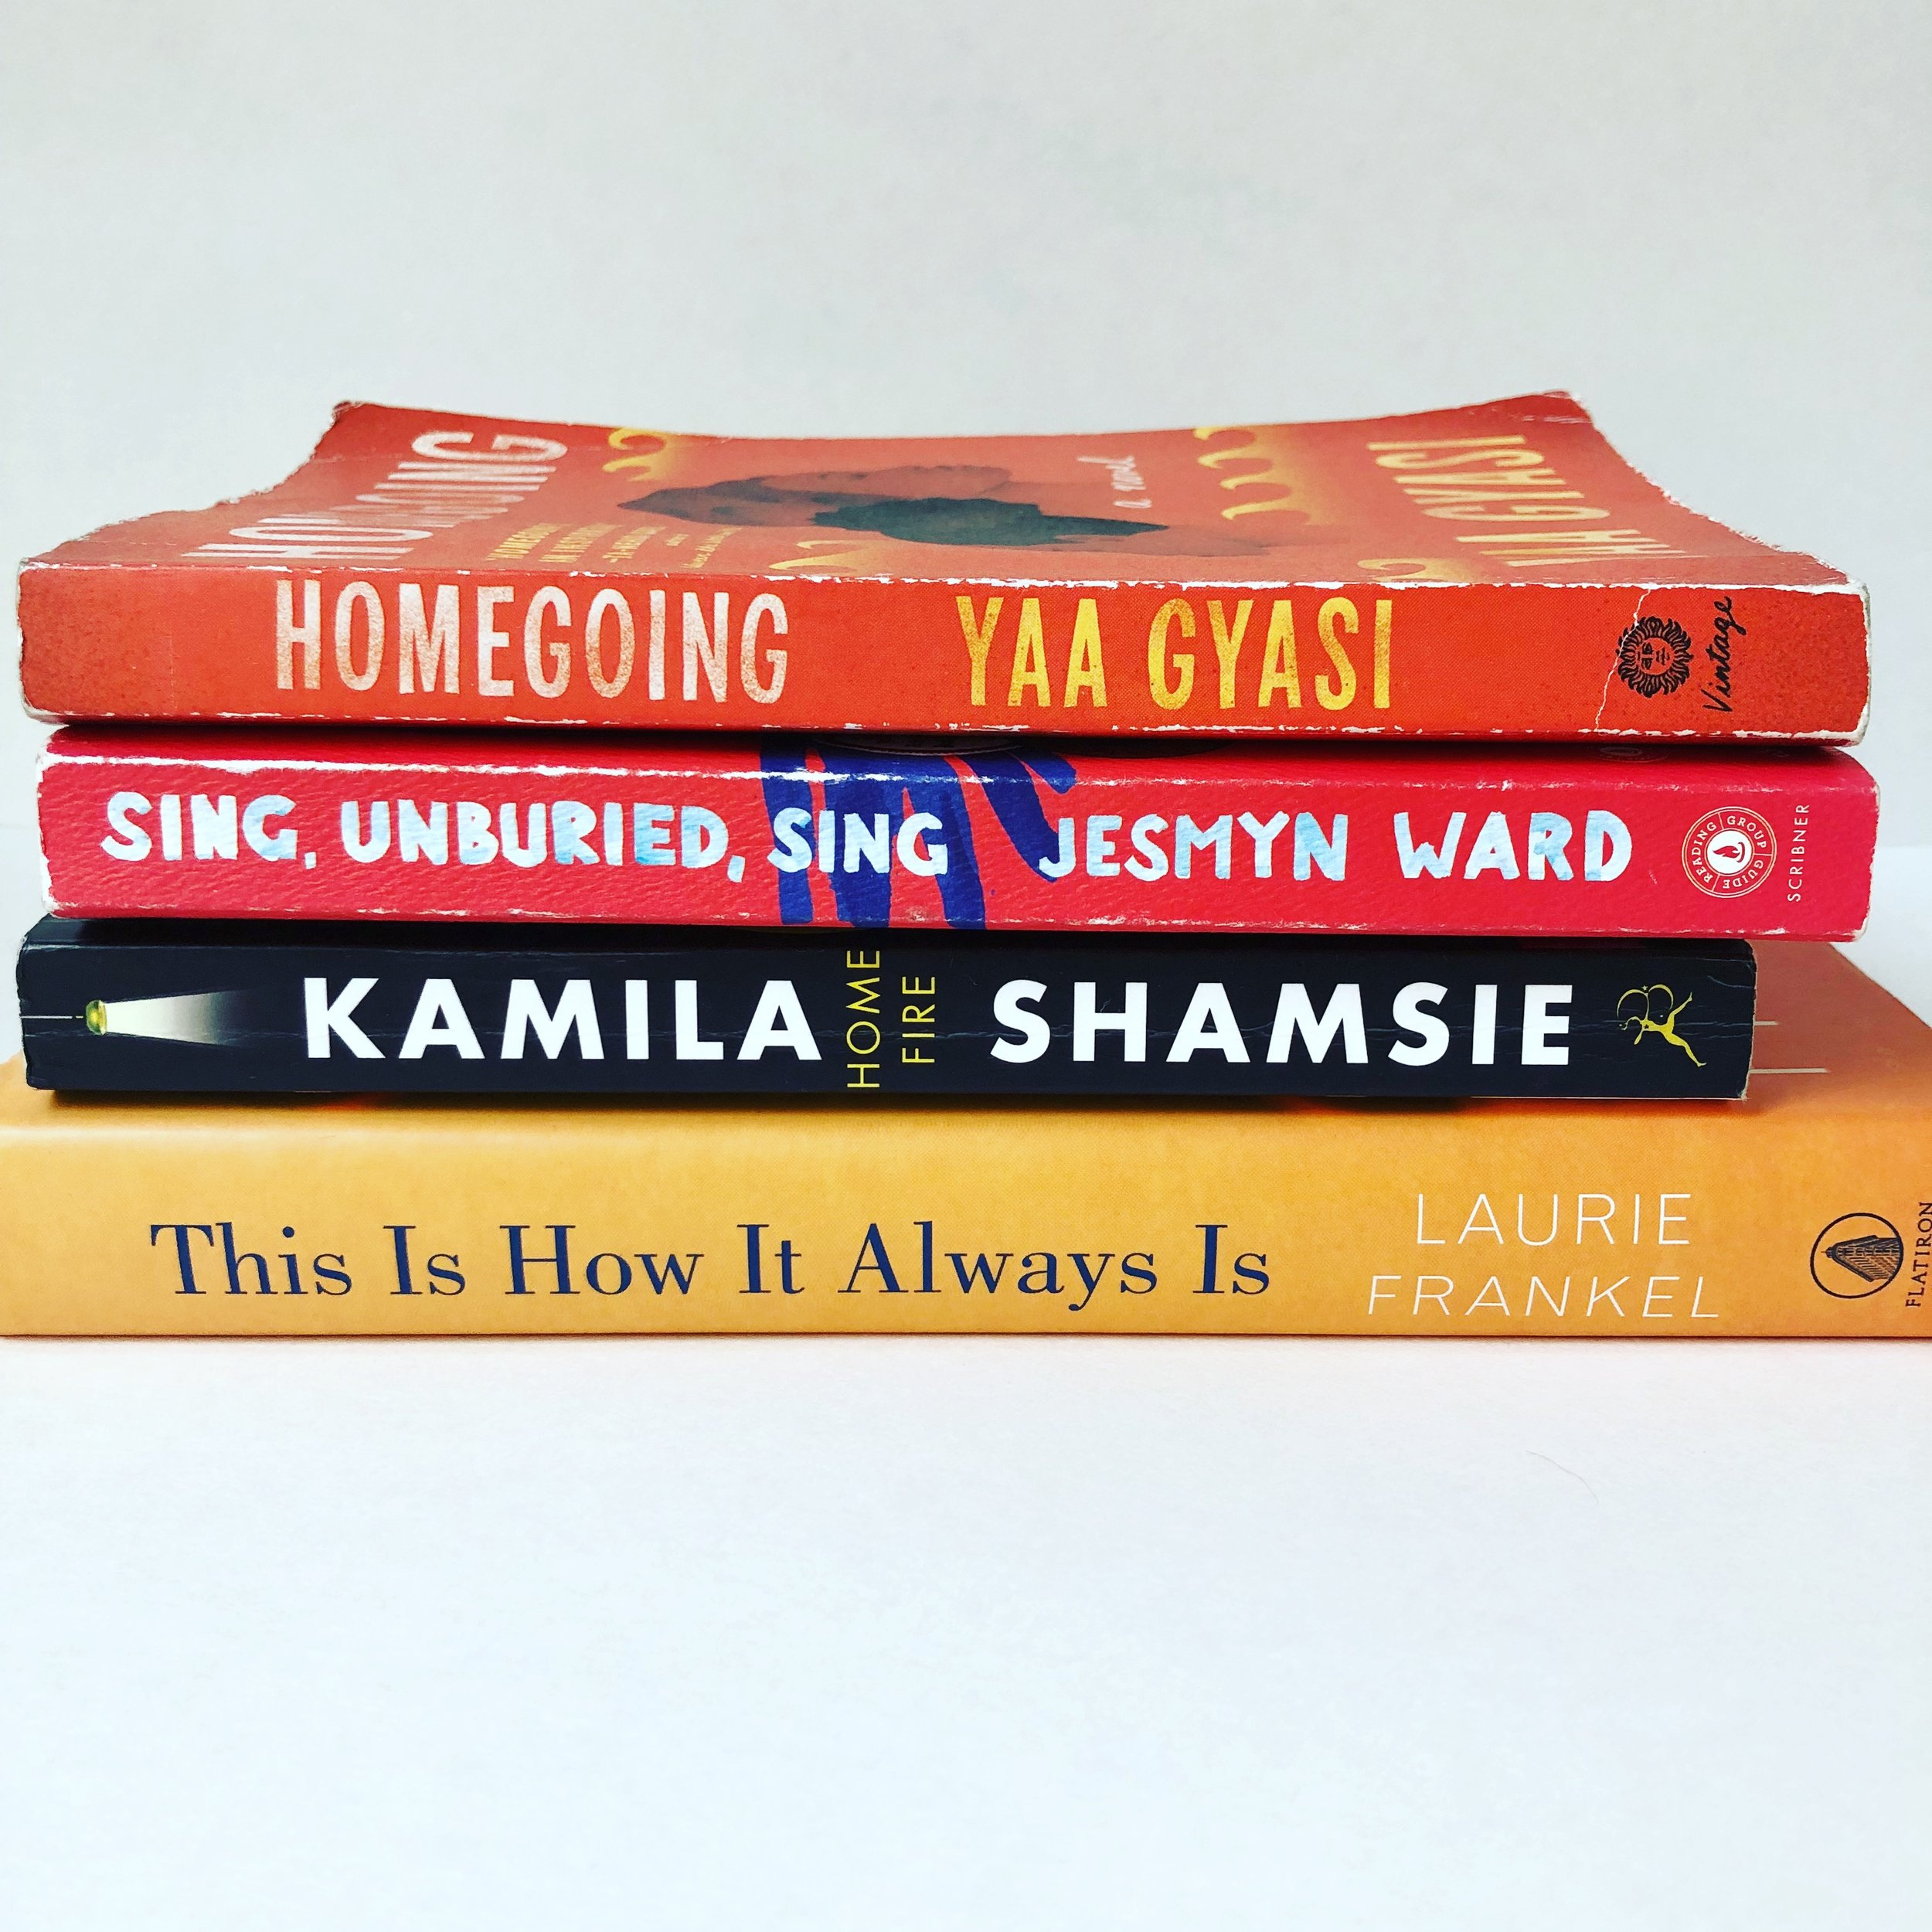 WOMEN'S FICTION SERIES - This series includes the best fiction by women writers.